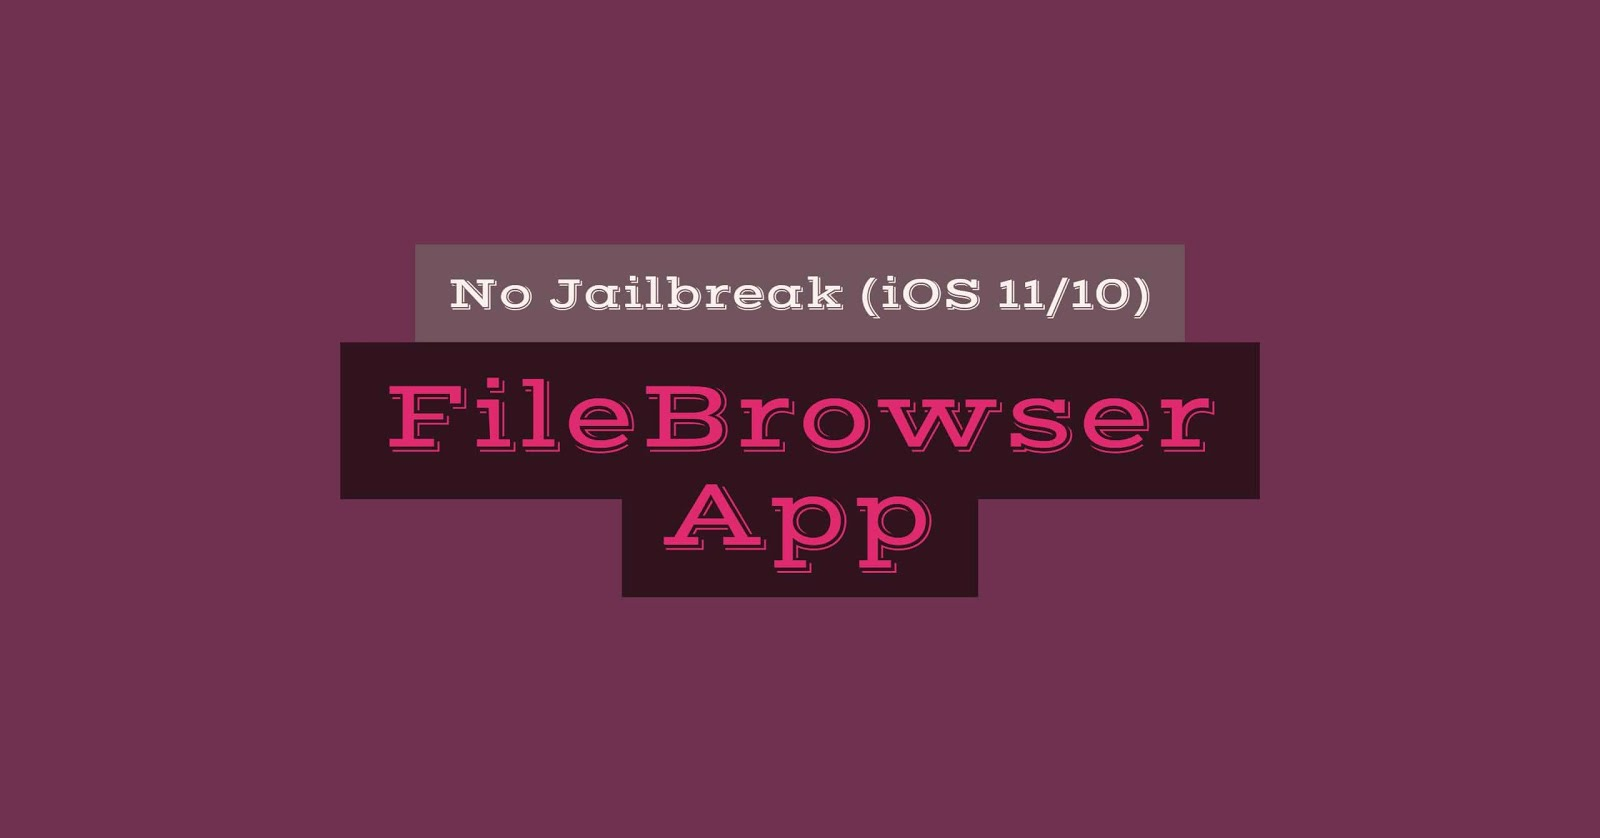 Here's how download and install FileBrowser IPA (Files app) on iOS 10/11 without jailbreak using Xcode or Cydia Impactor for non-jailbroken users.